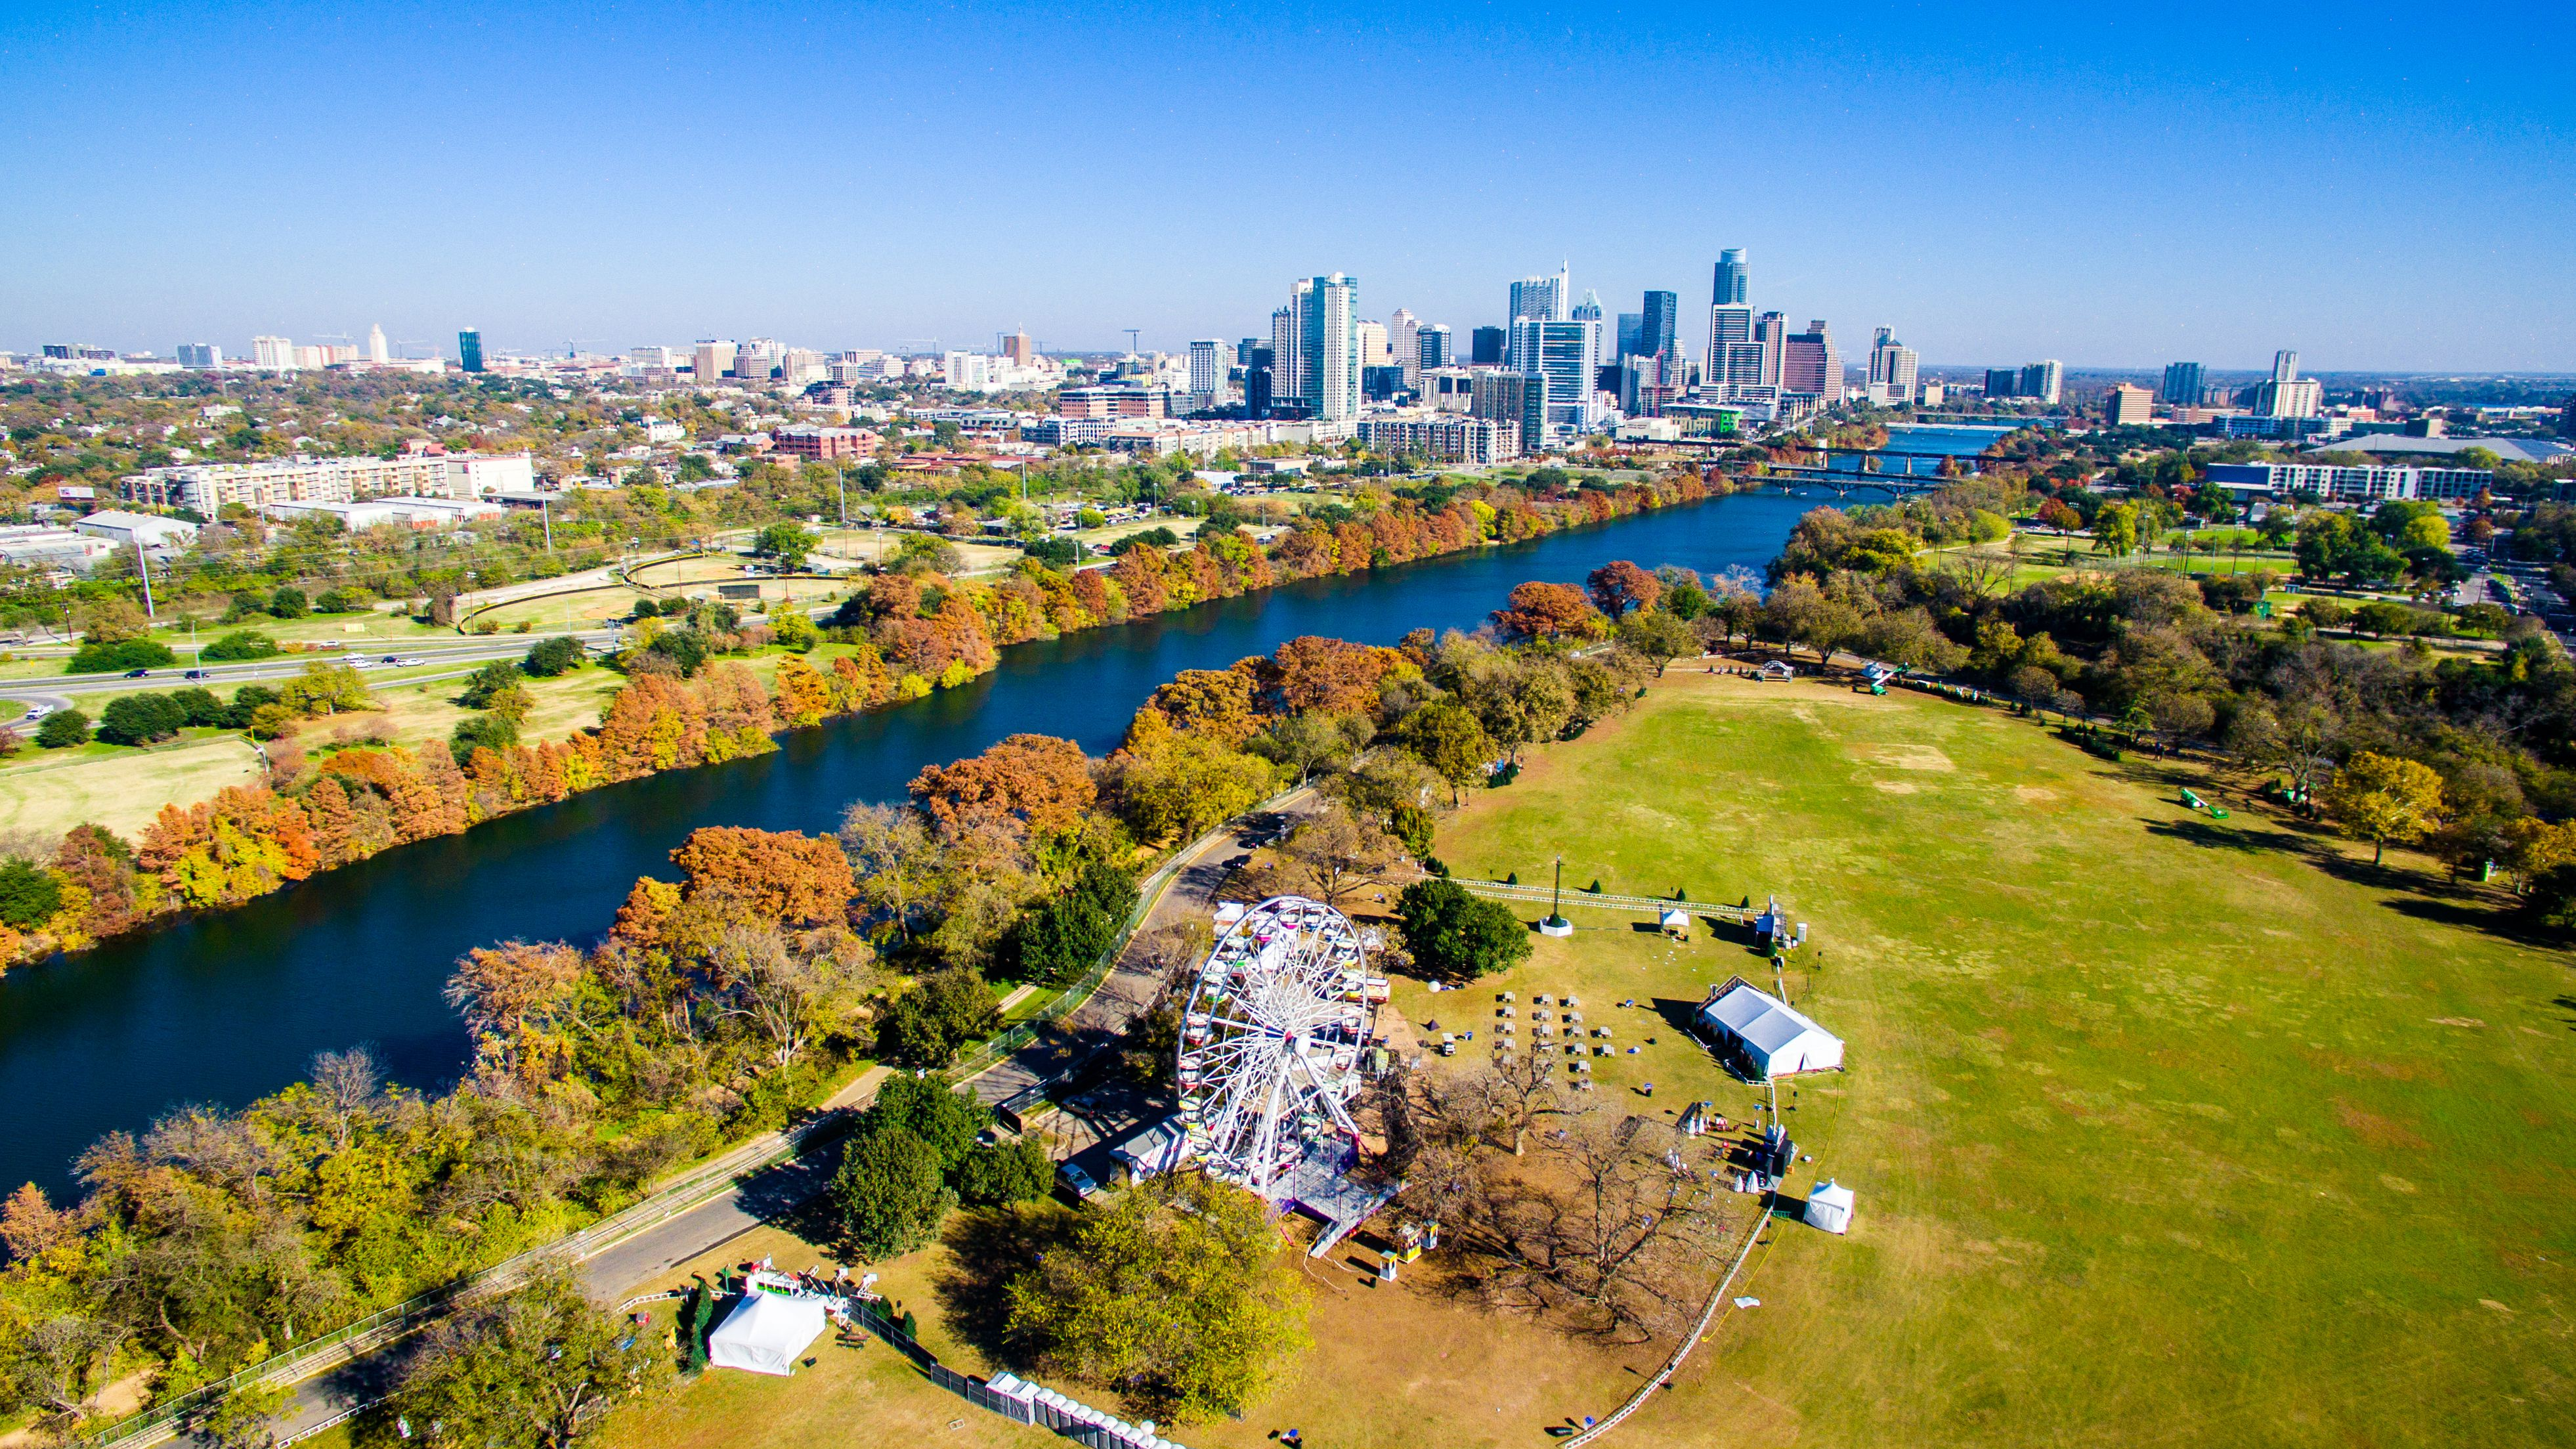 The Top 12 Things to Do in Zilker Park in Austin, TX Zilker Park Austin Tx Map on 6th street austin tx map, ut campus austin tx map, circuit of the americas austin tx map, concordia university austin tx map, barton springs pool austin tx map, the domain austin tx map, hotels austin tx map, shoal creek austin tx map, austin tx on a map, round rock austin tx map, lakeline mall austin tx map, rock springs texas map, highland mall austin tx map, austin tx city limits map, barton creek mall austin tx map, camp mabry austin tx map, barton creek greenbelt austin tx map, travis heights austin tx map, sxsw austin tx map,